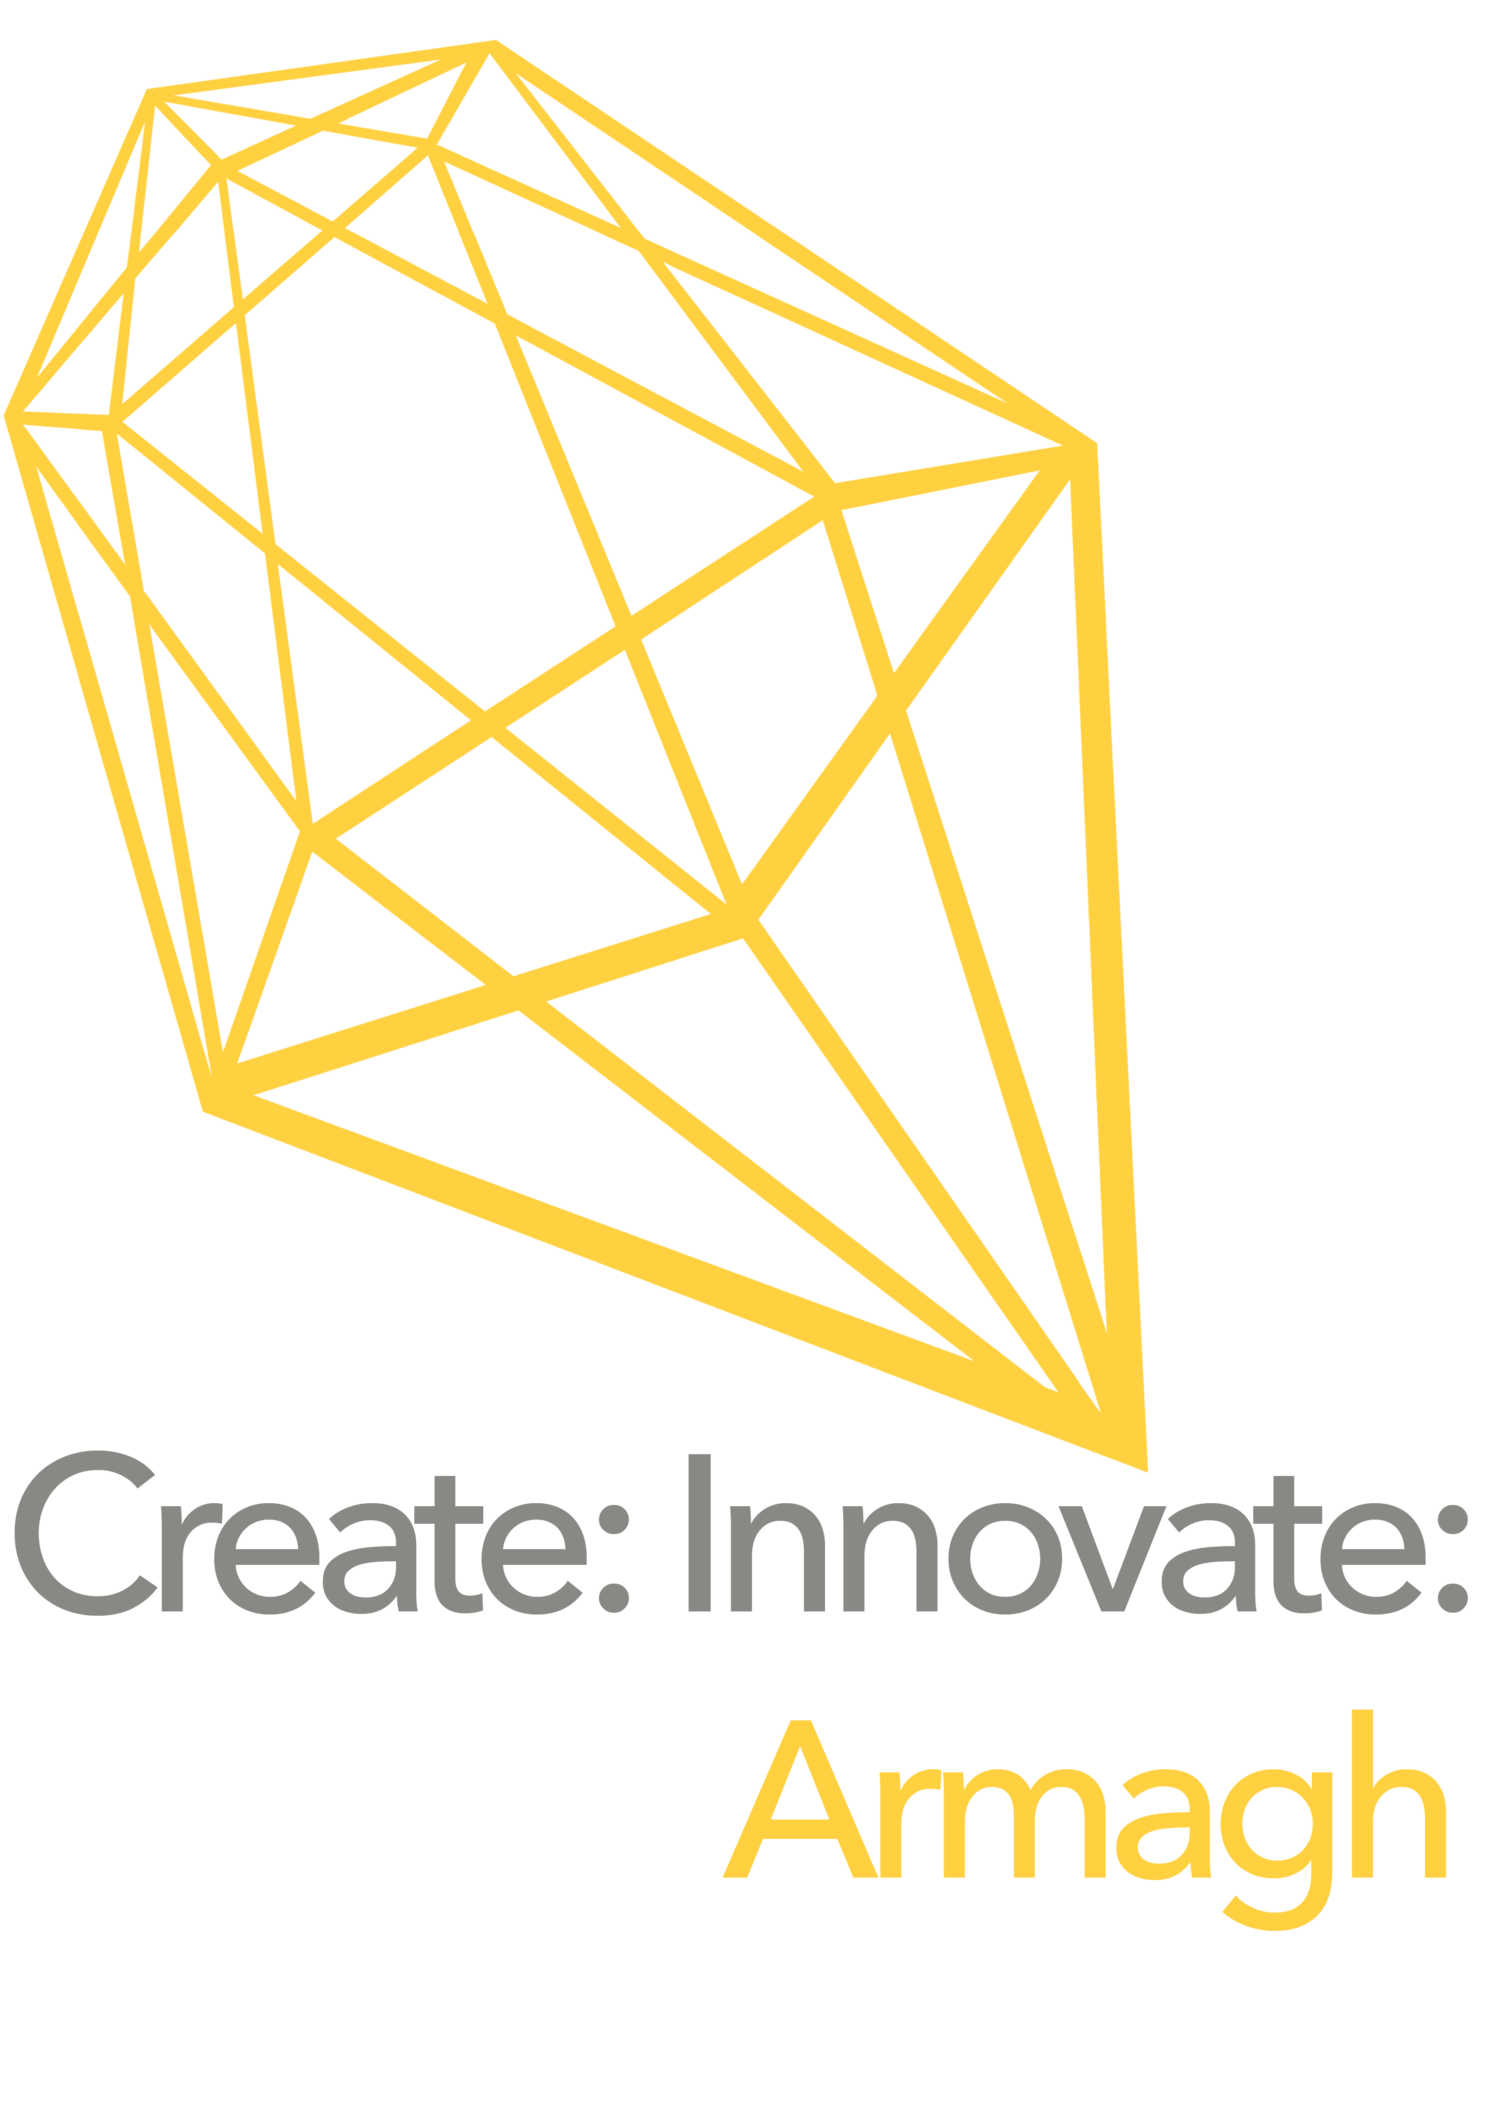 Create: Innovate: Armagh